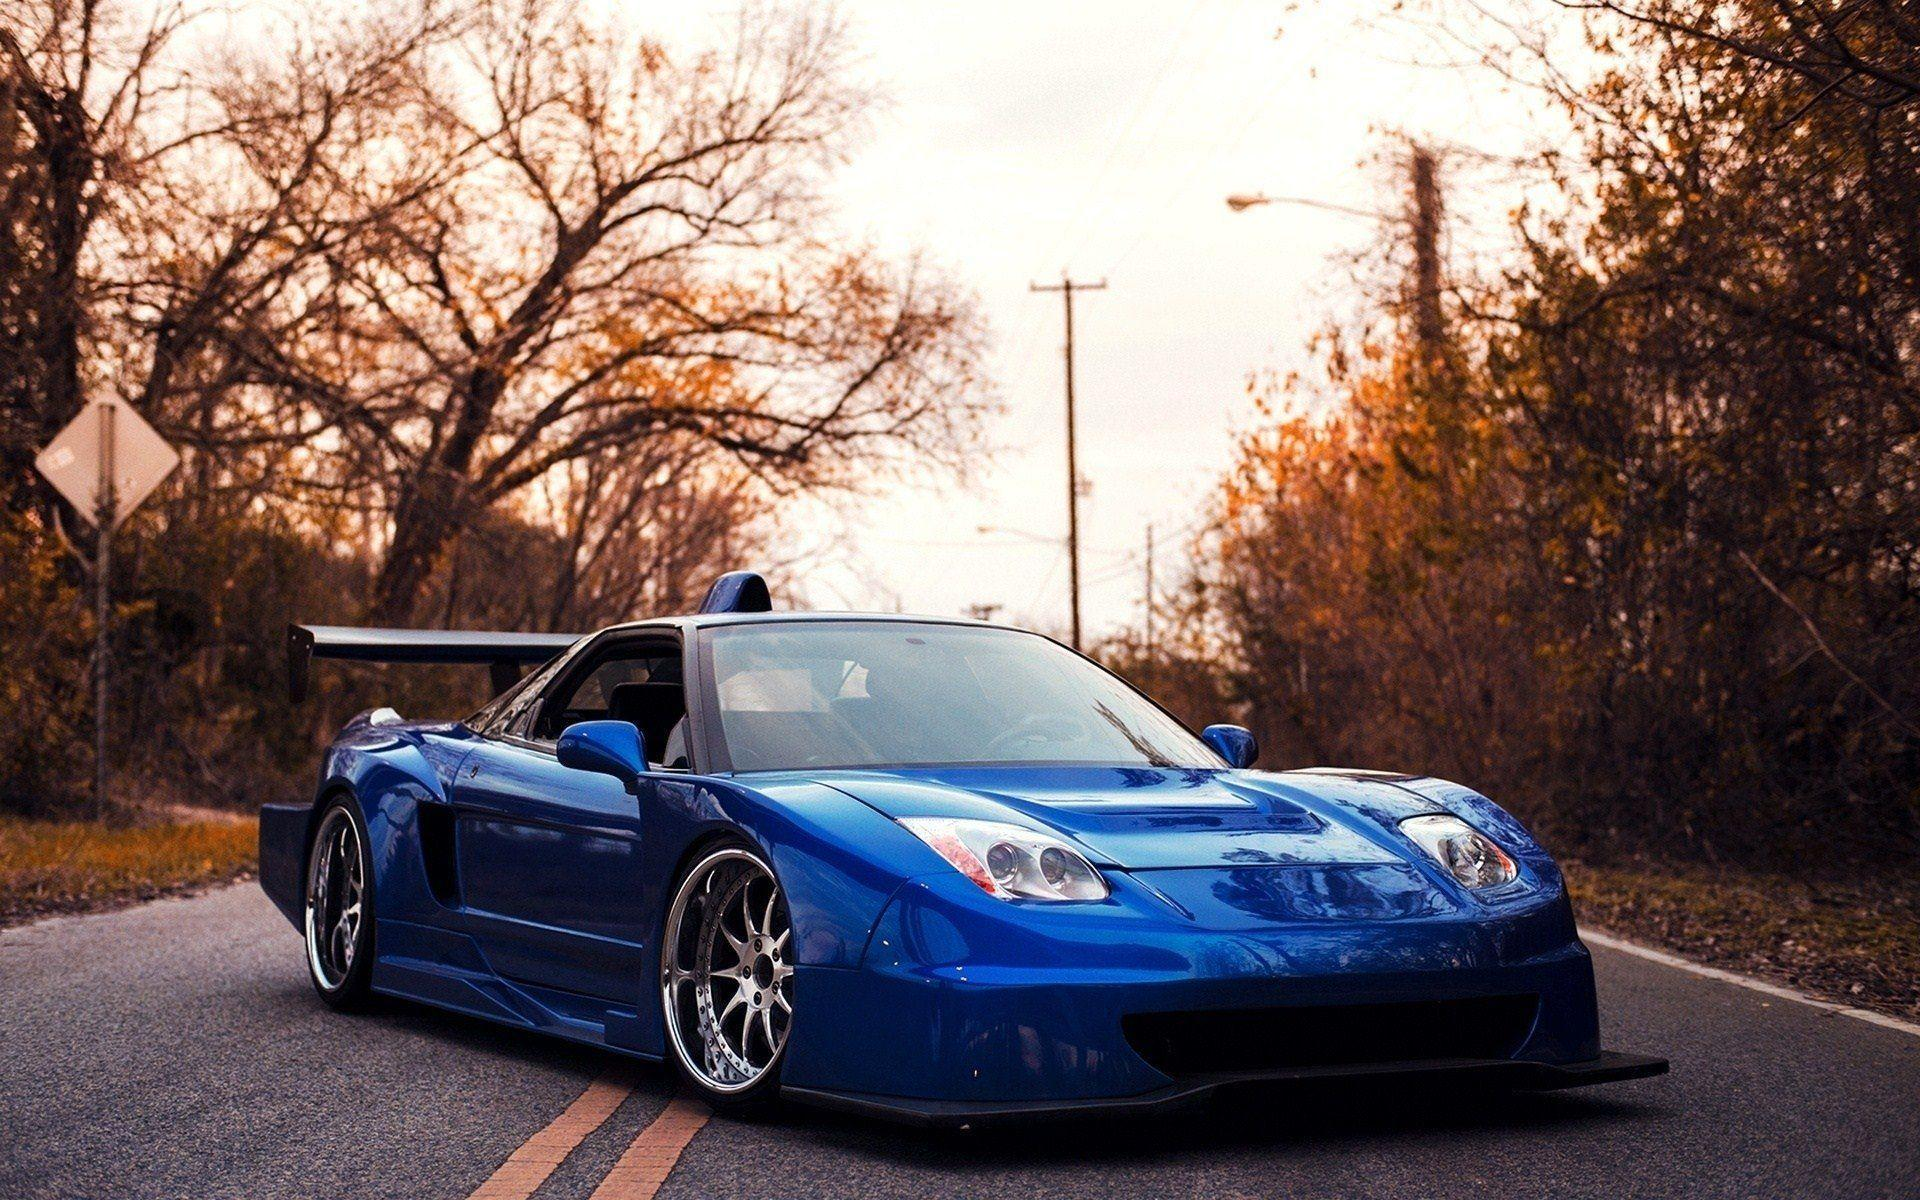 Honda NSX Wallpapers - Wallpaper Cave